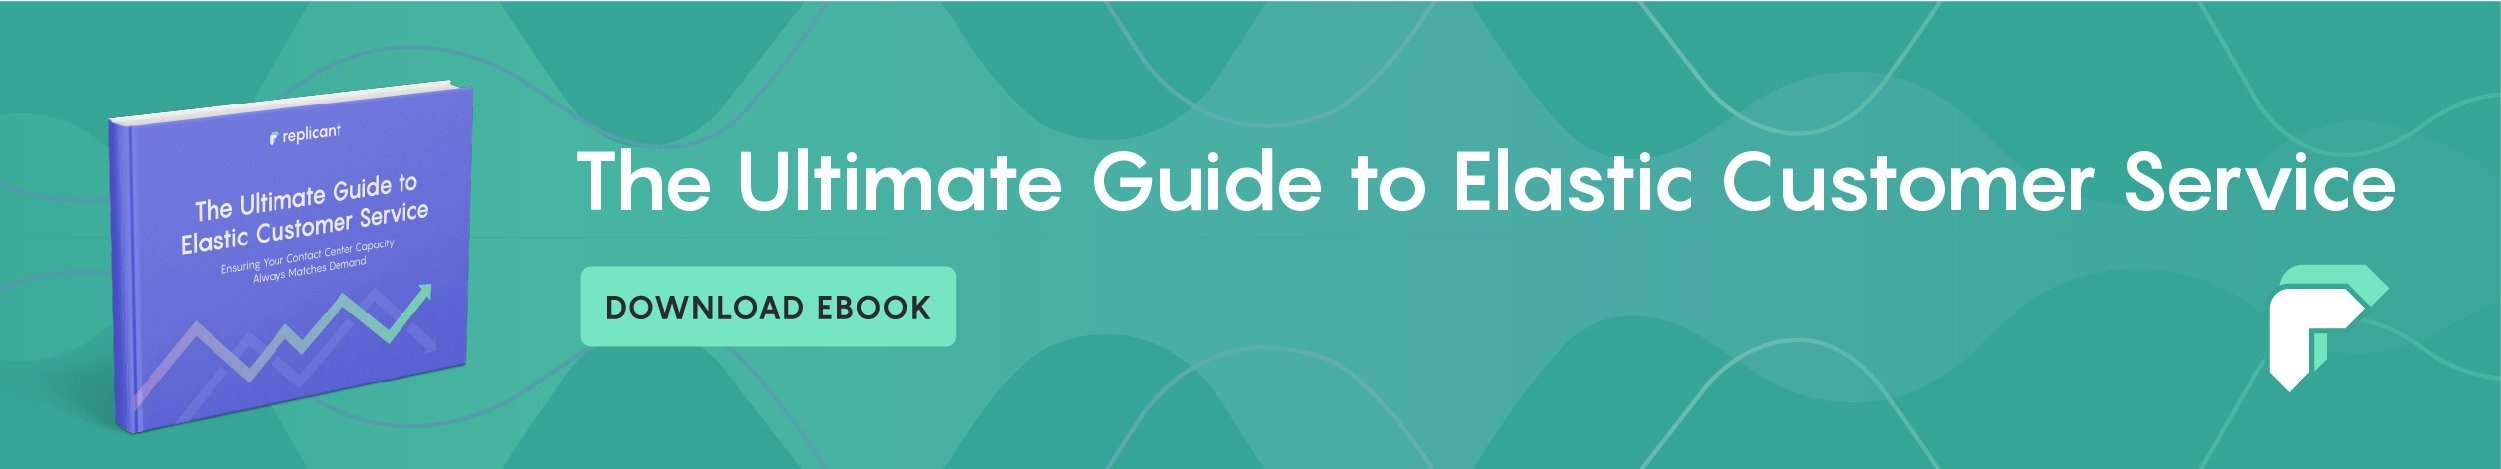 Download The Ultimate Guide to Elastic Customer Service